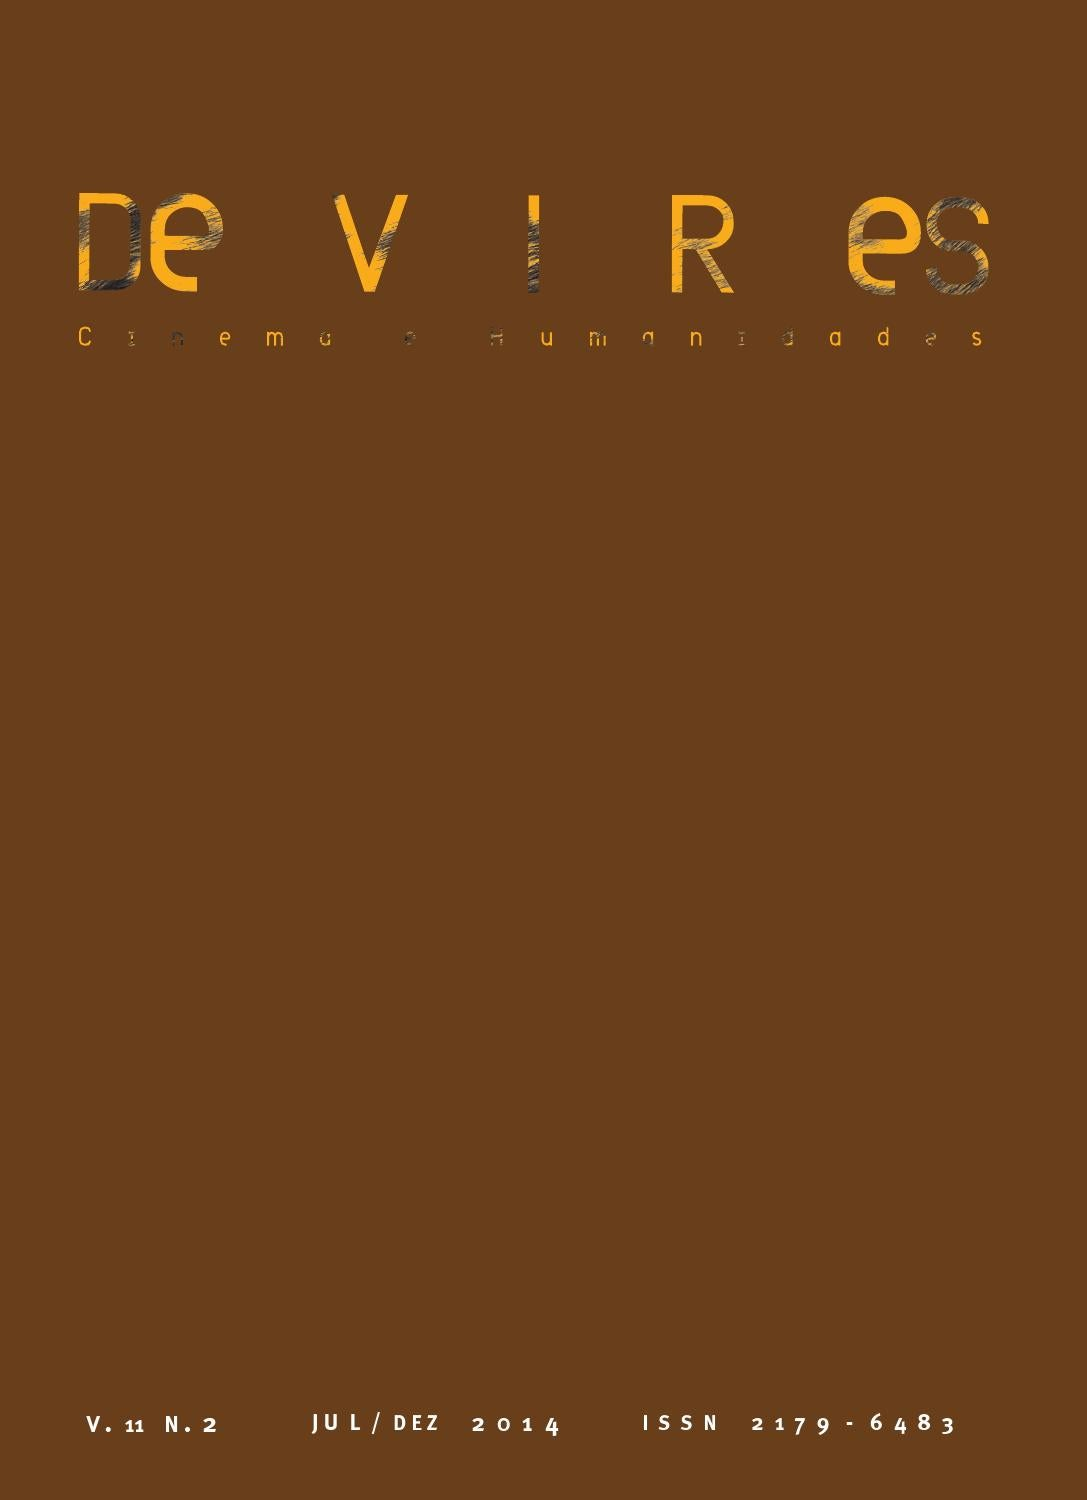 Revista Devires by Revista Devires - issuu a52fa7b009b34